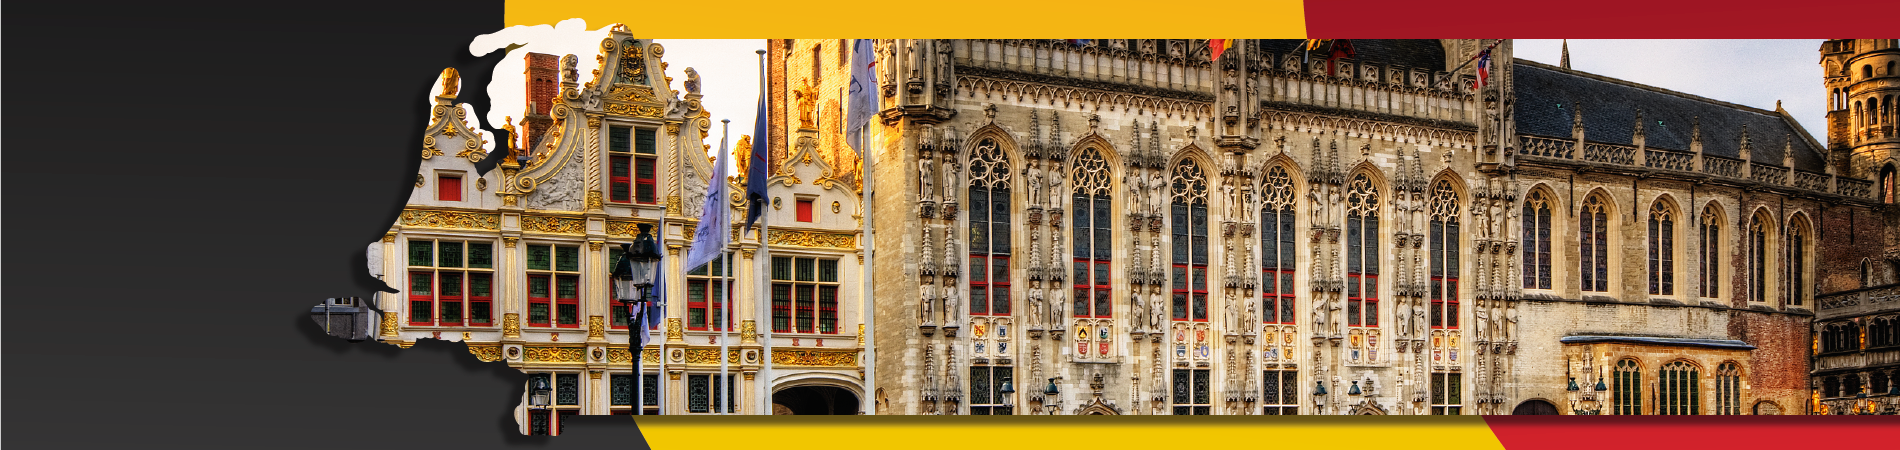 AMS Town hall Brugge